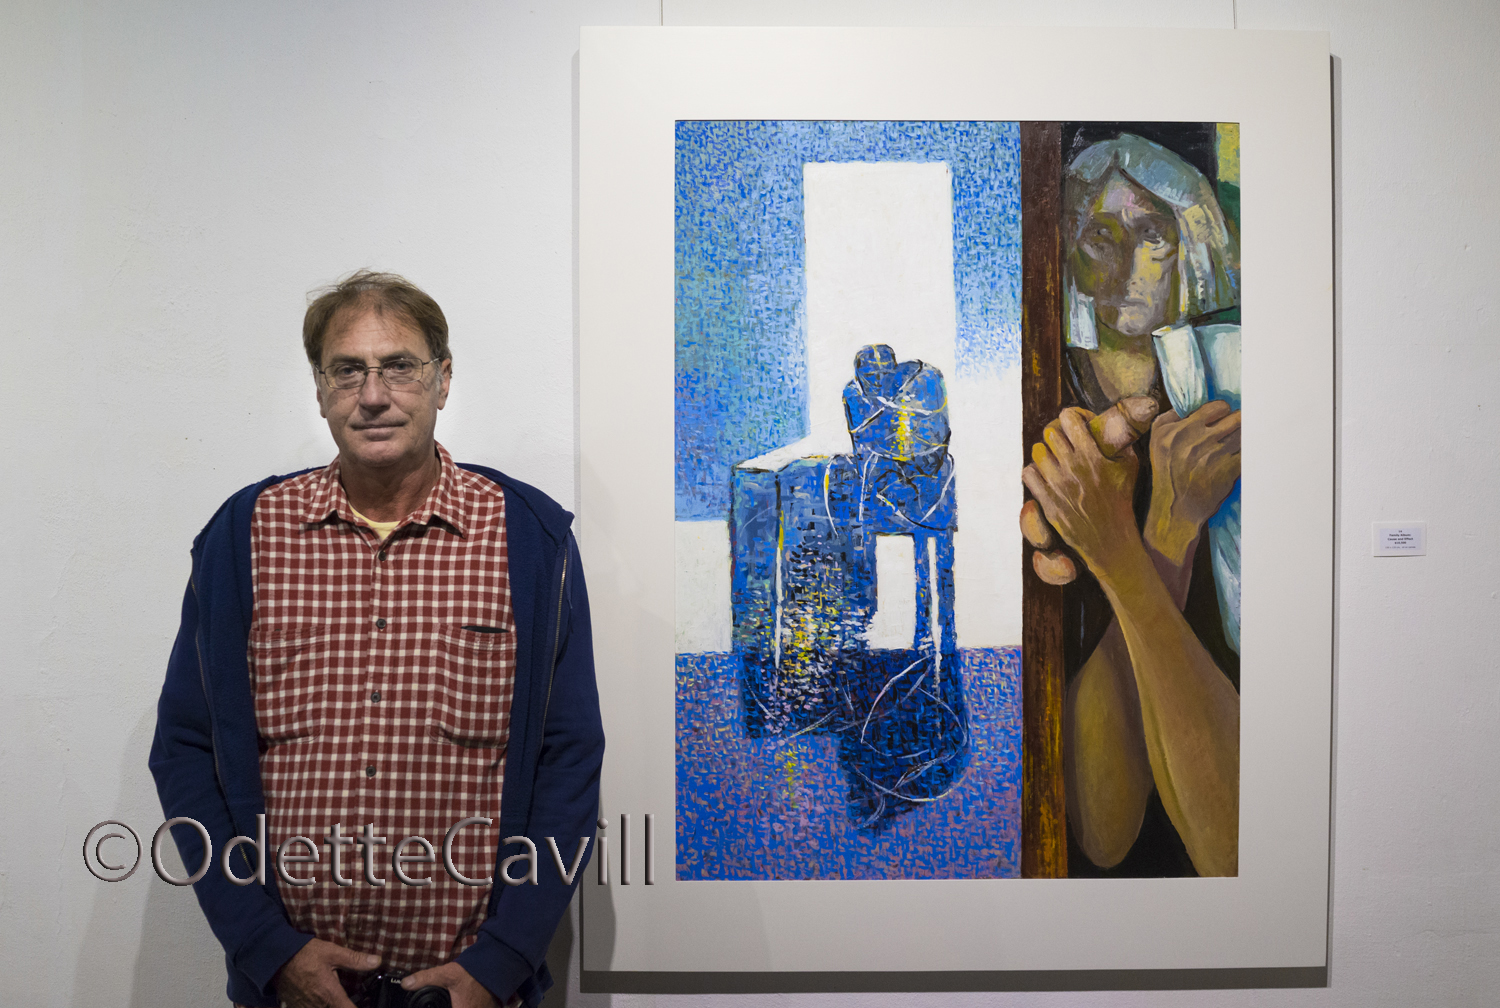 A fellow photographer Gerard stands next to one of Laszlo's works.